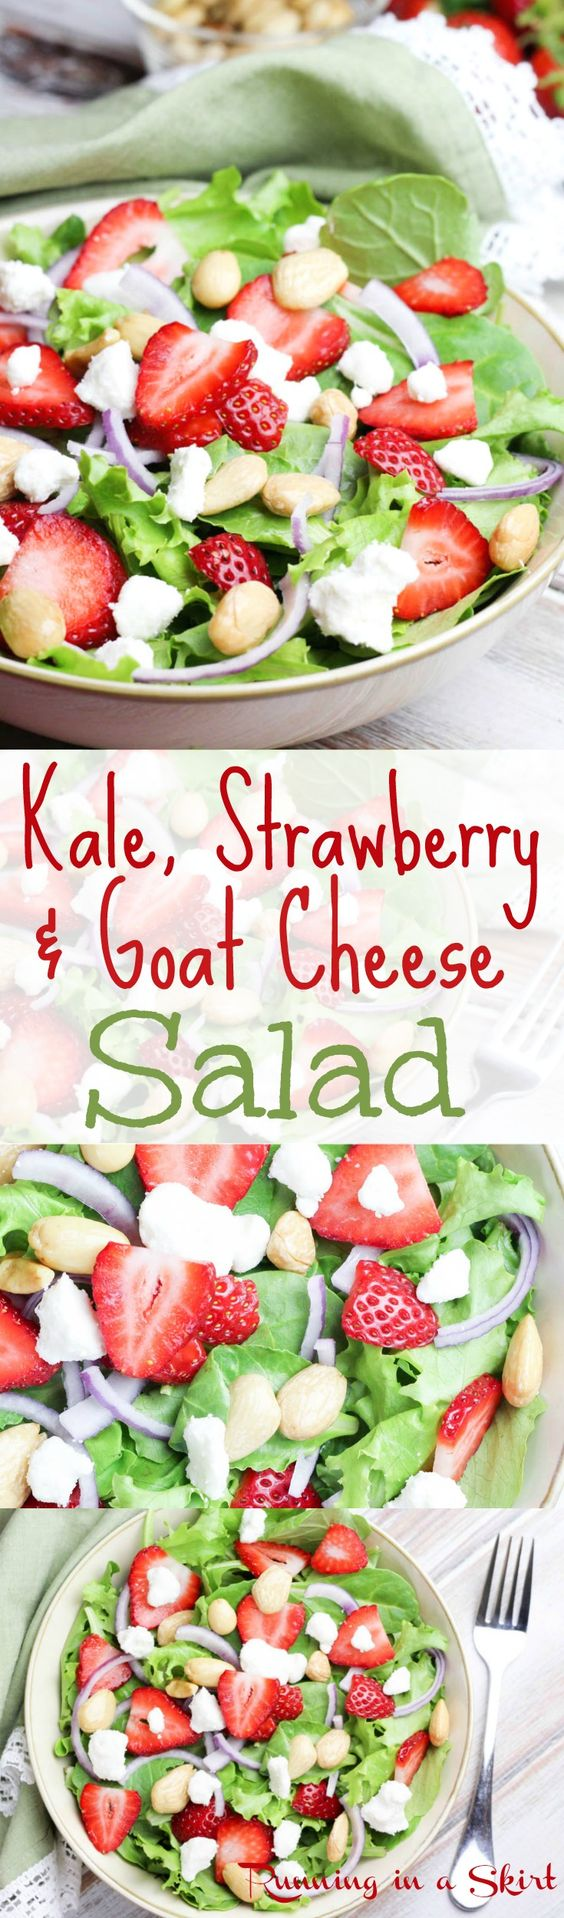 ... strawberries kale salad recipes cheese recipes with goat cheese a